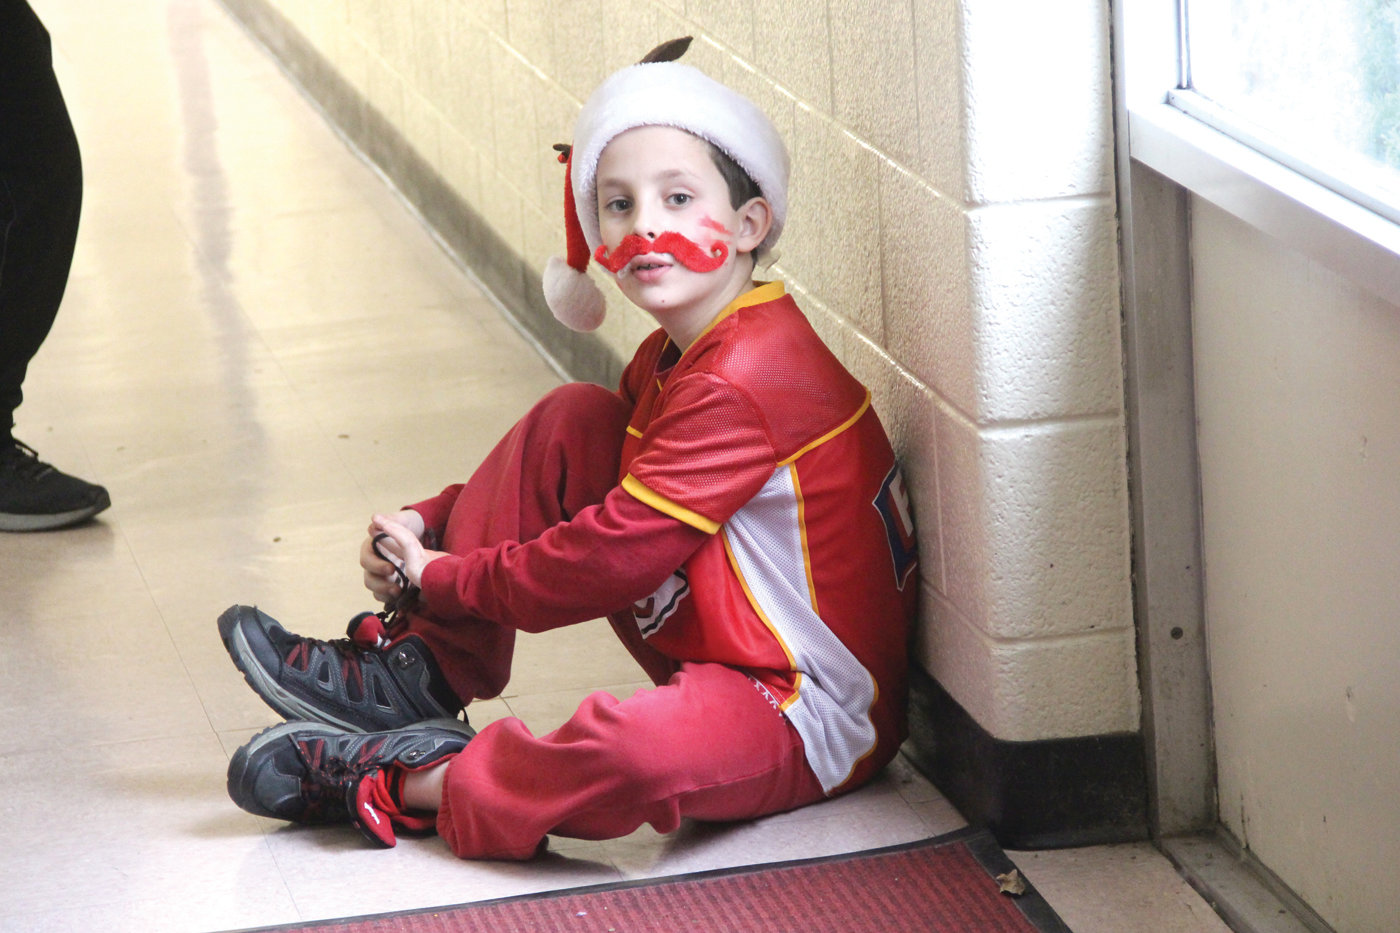 ALL IN RED: Fifth grader Brendan Flynnties his shoes before joining his classmates – all dressed in red – for a school photo.